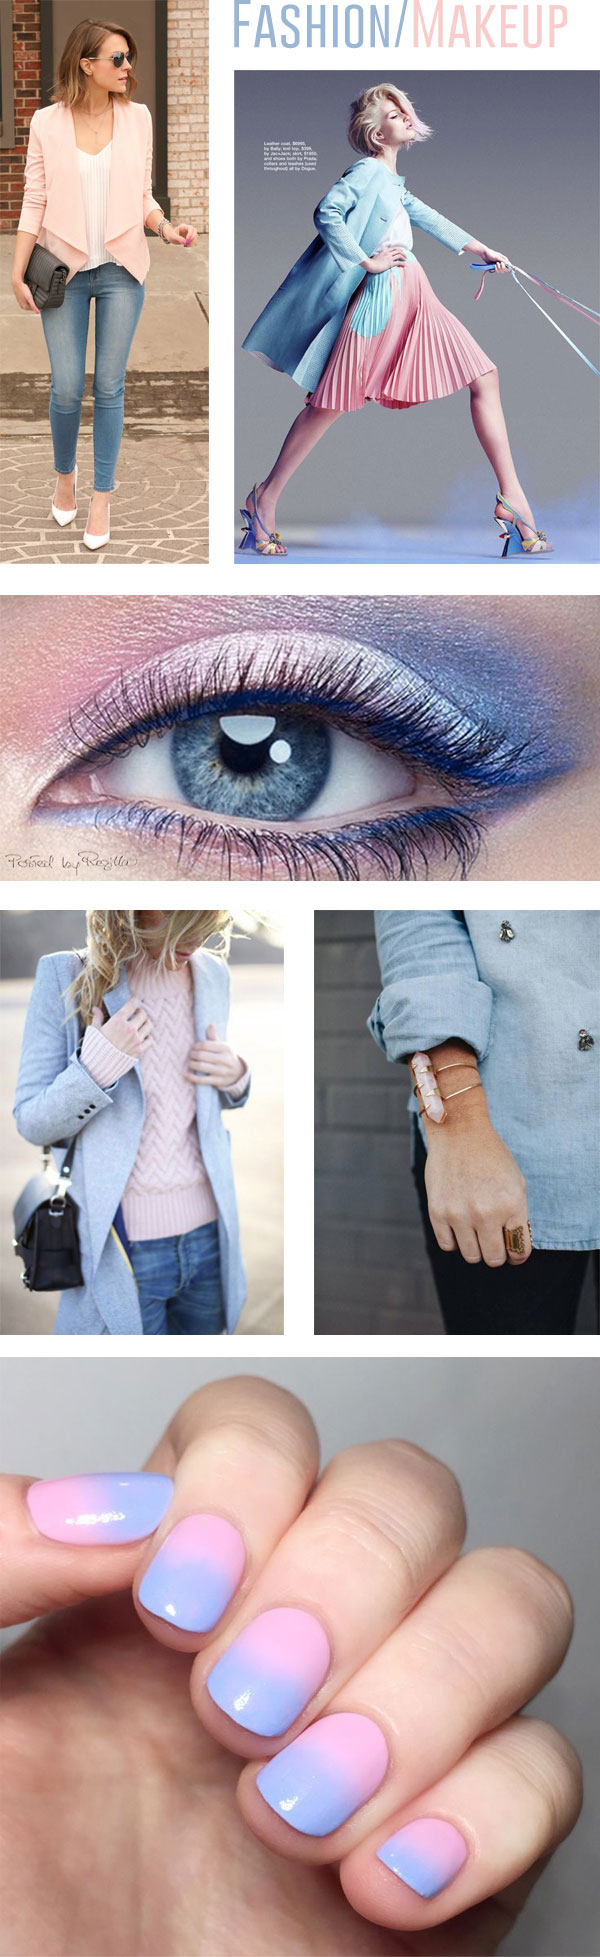 Pantone Color of the Year 2016 Fashion/Makeup